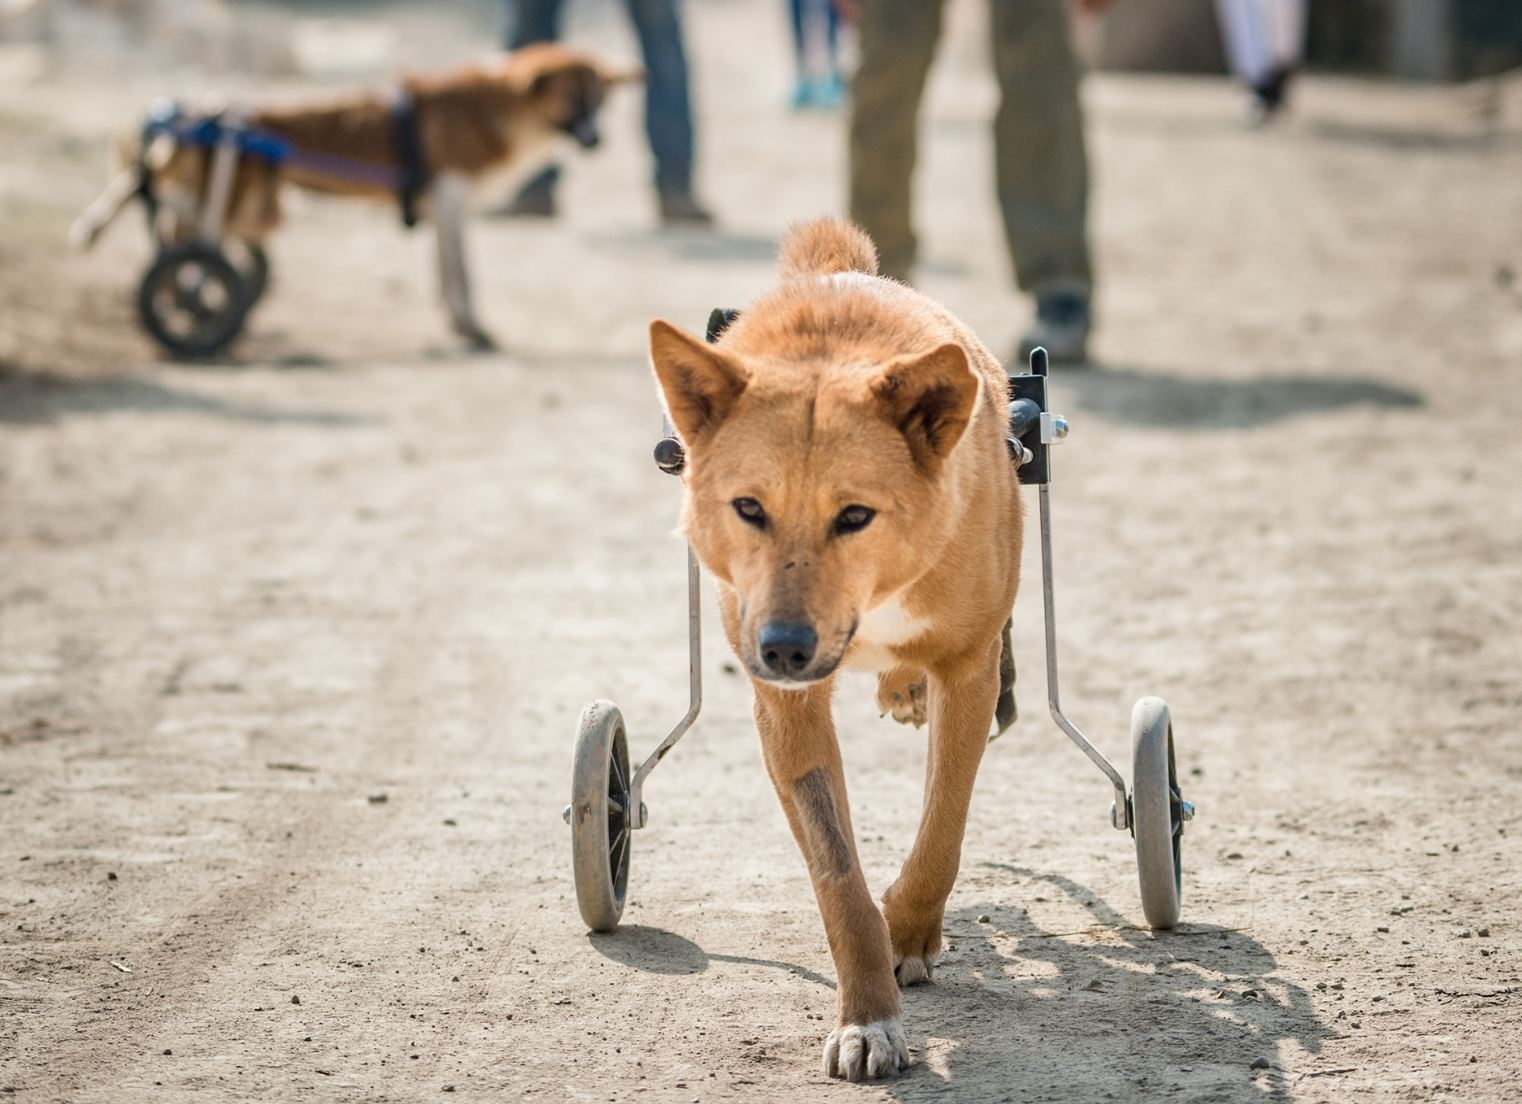 A dog in a wheelchair